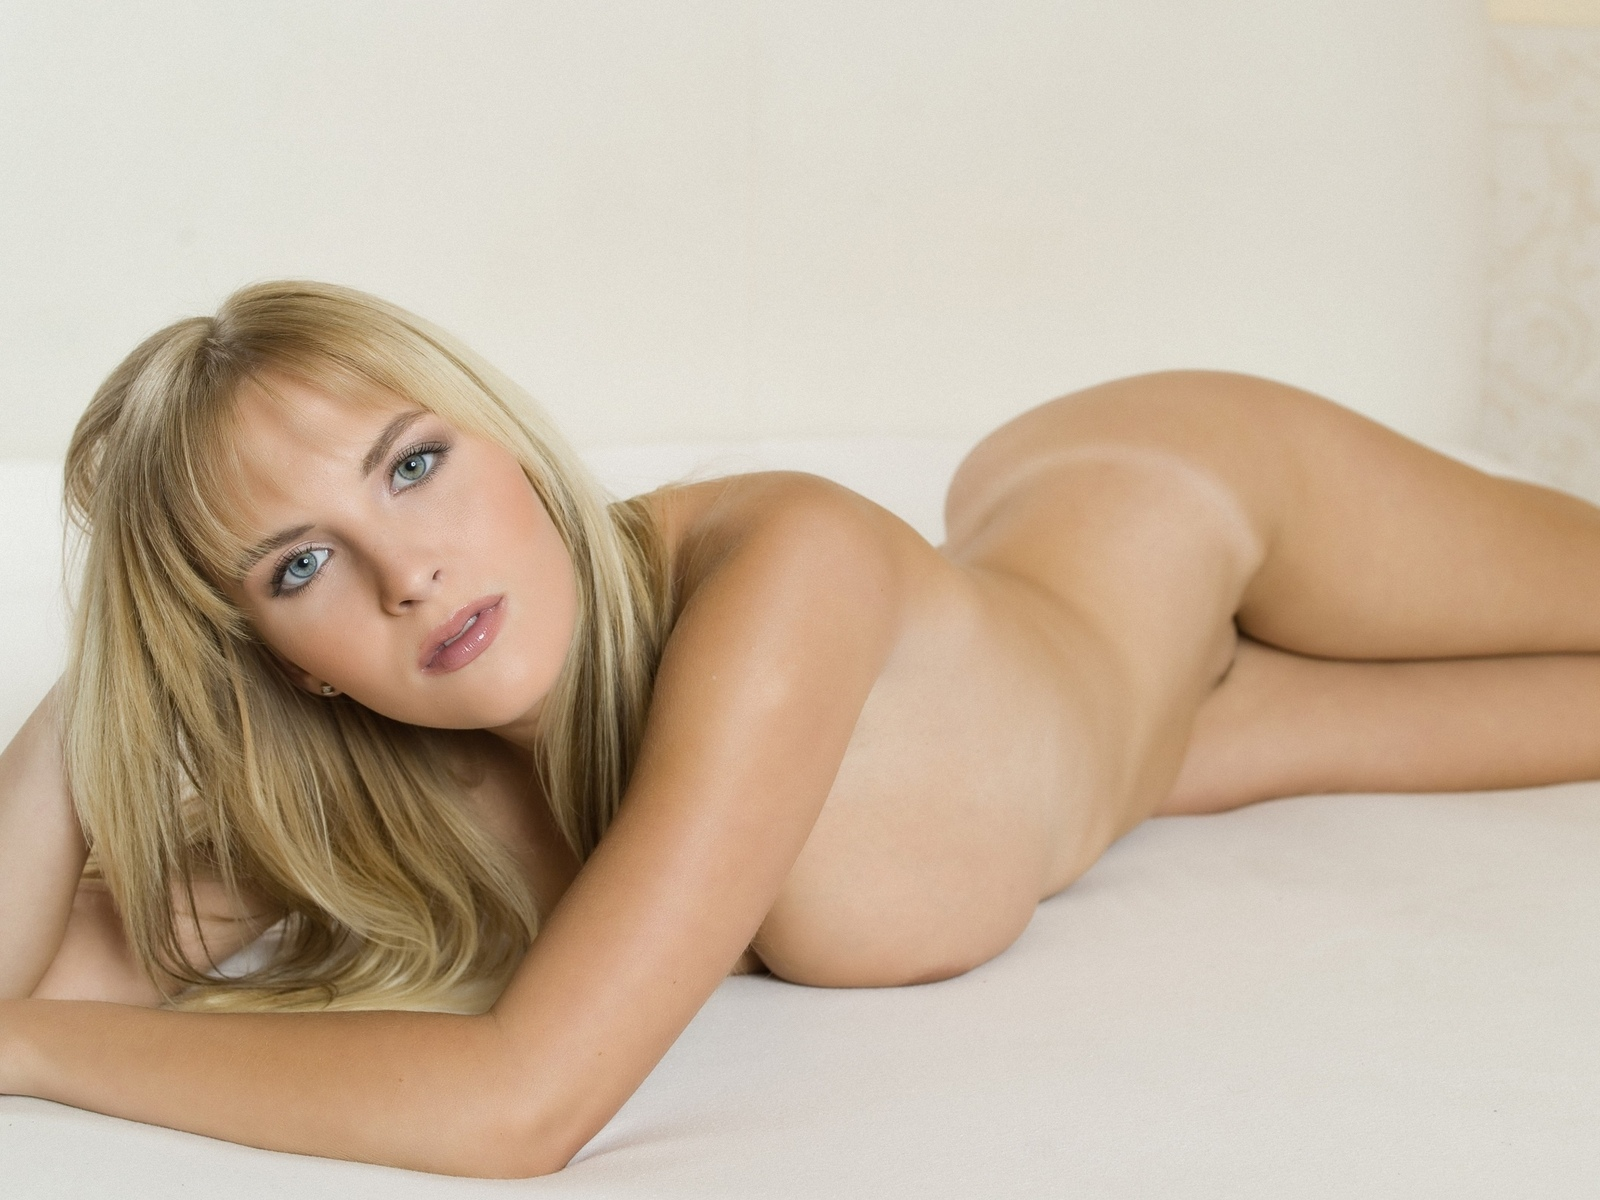 Naked blonde girl with backpack on her back